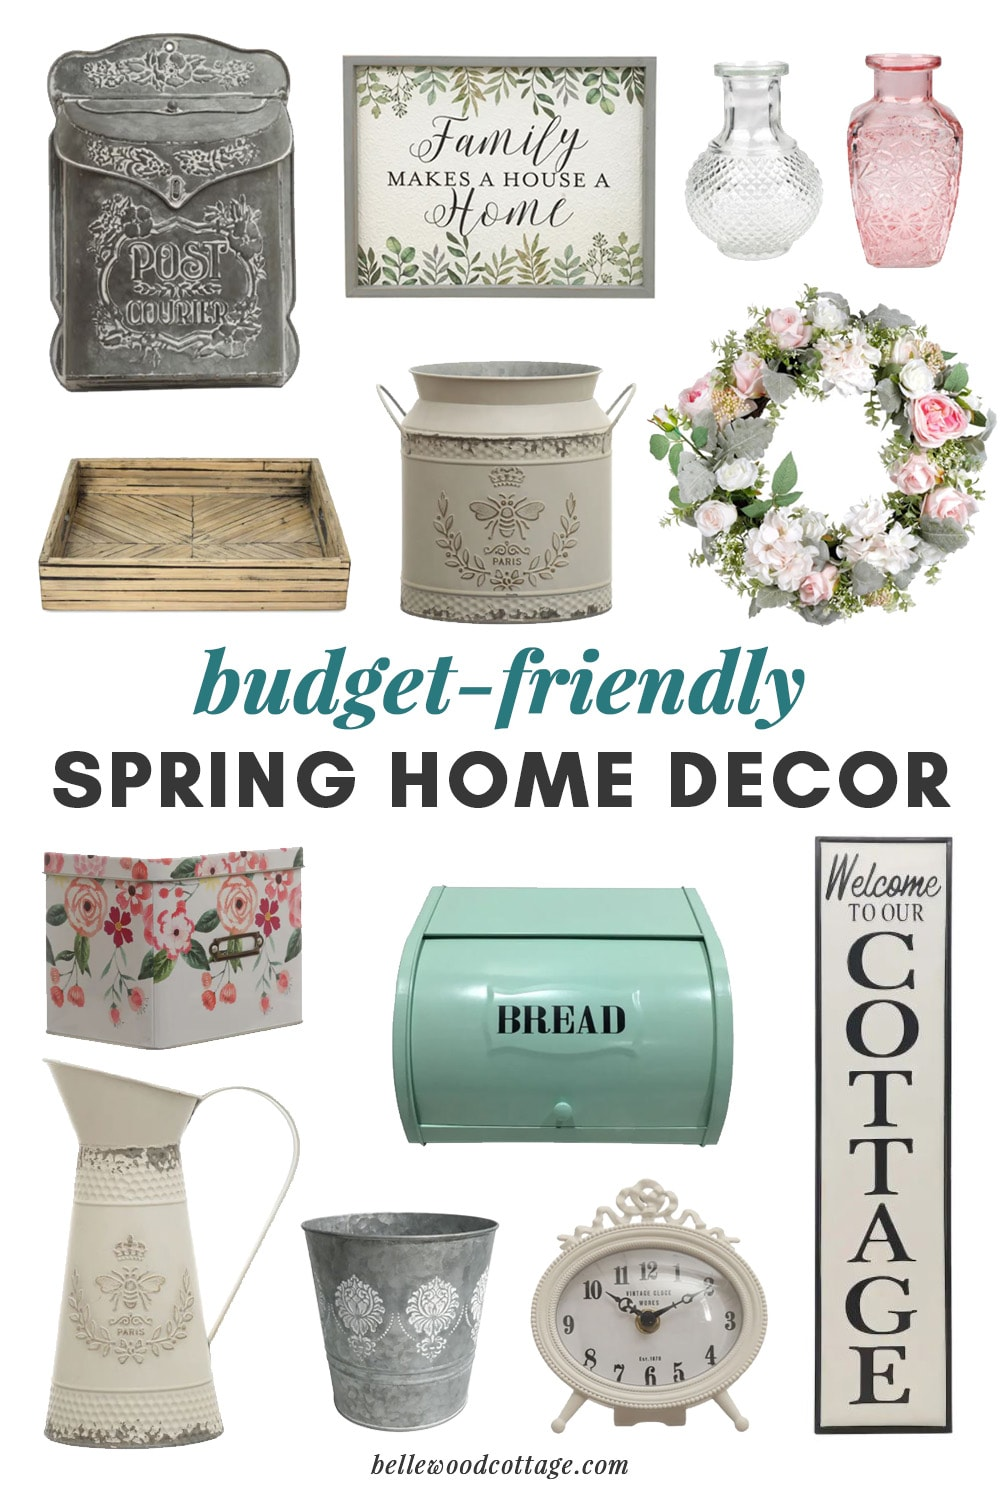 Collage of budget-friendly spring home décor from Michaels.